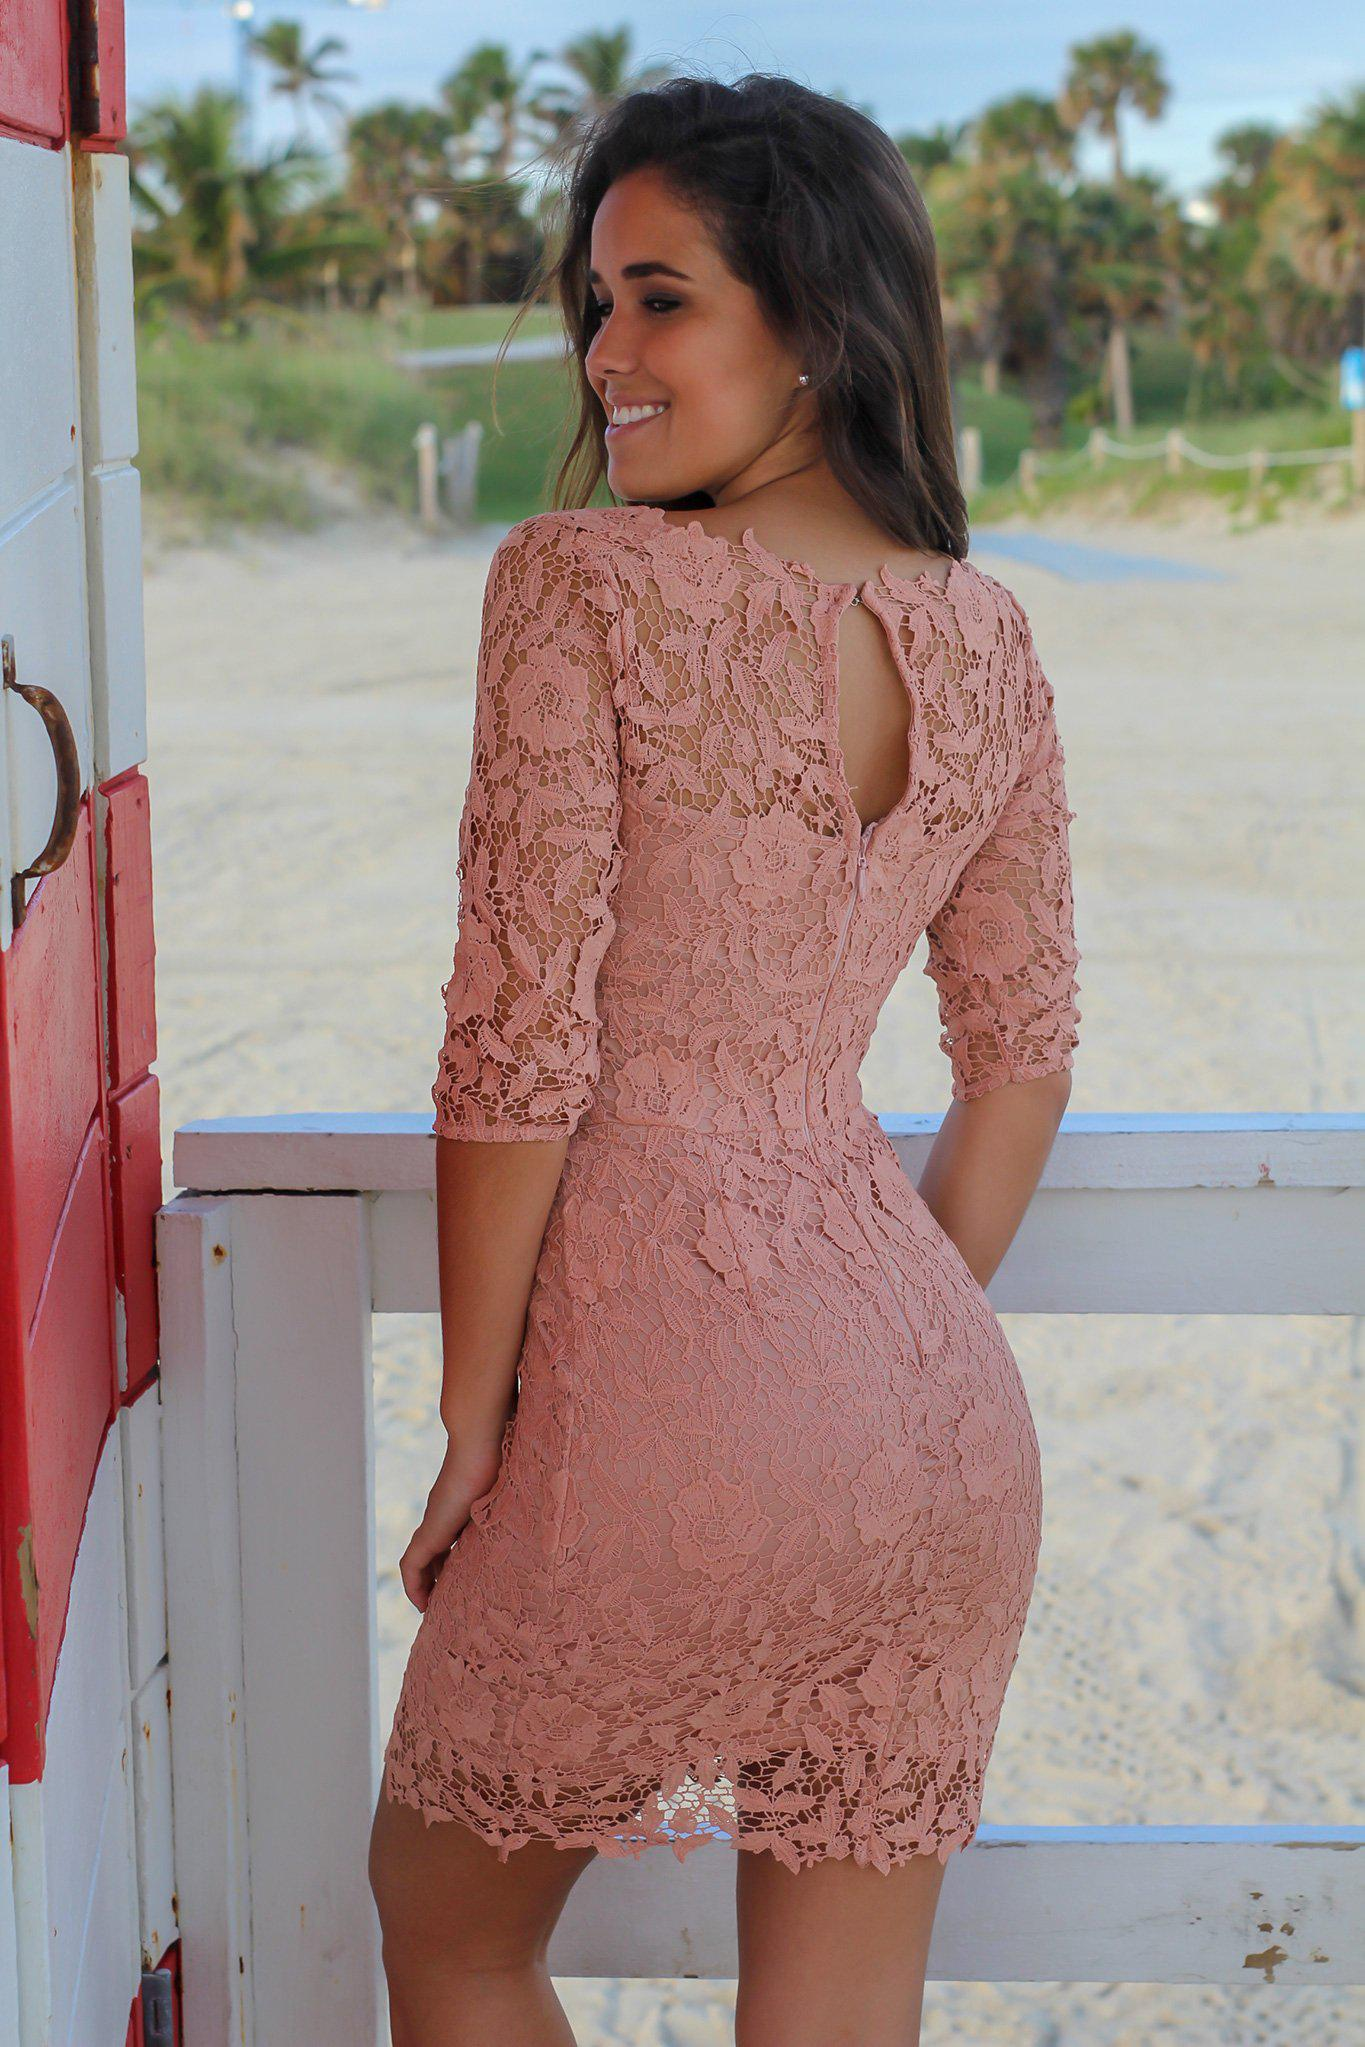 Dusty Blush Crochet Short Dress with 3/4 Sleeves